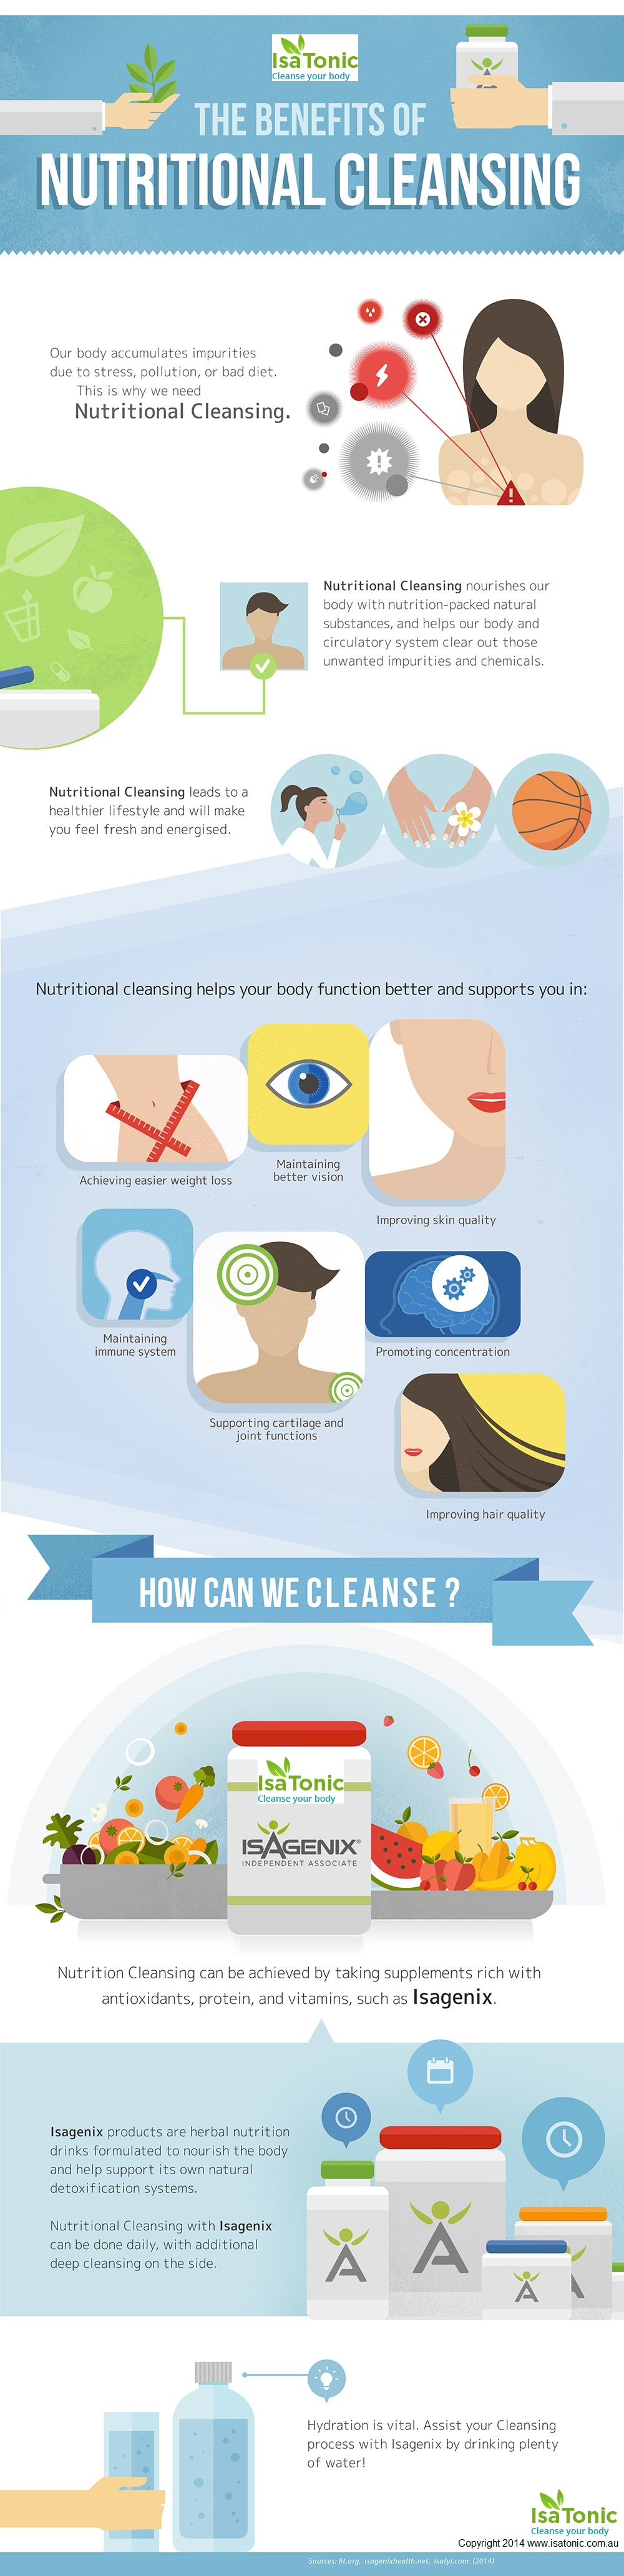 What is nutritional cleansing